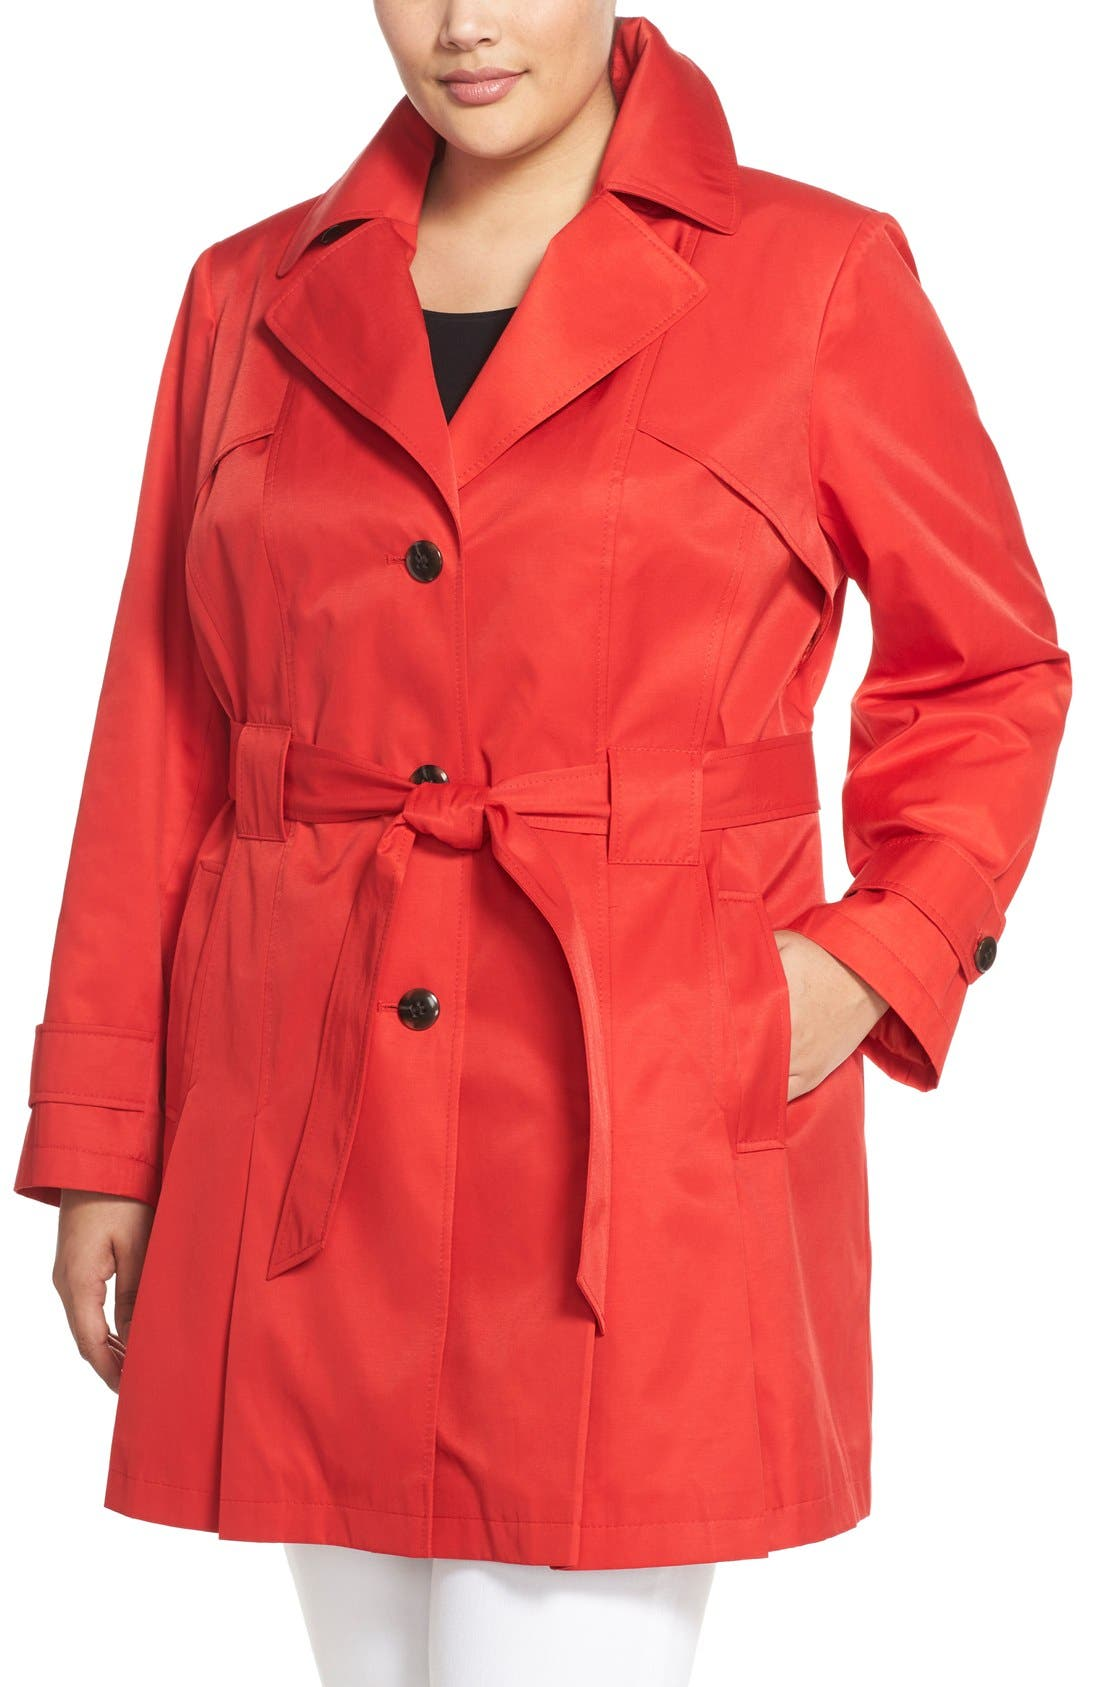 'Scarpa' Single Breasted Trench Coat,                             Alternate thumbnail 28, color,